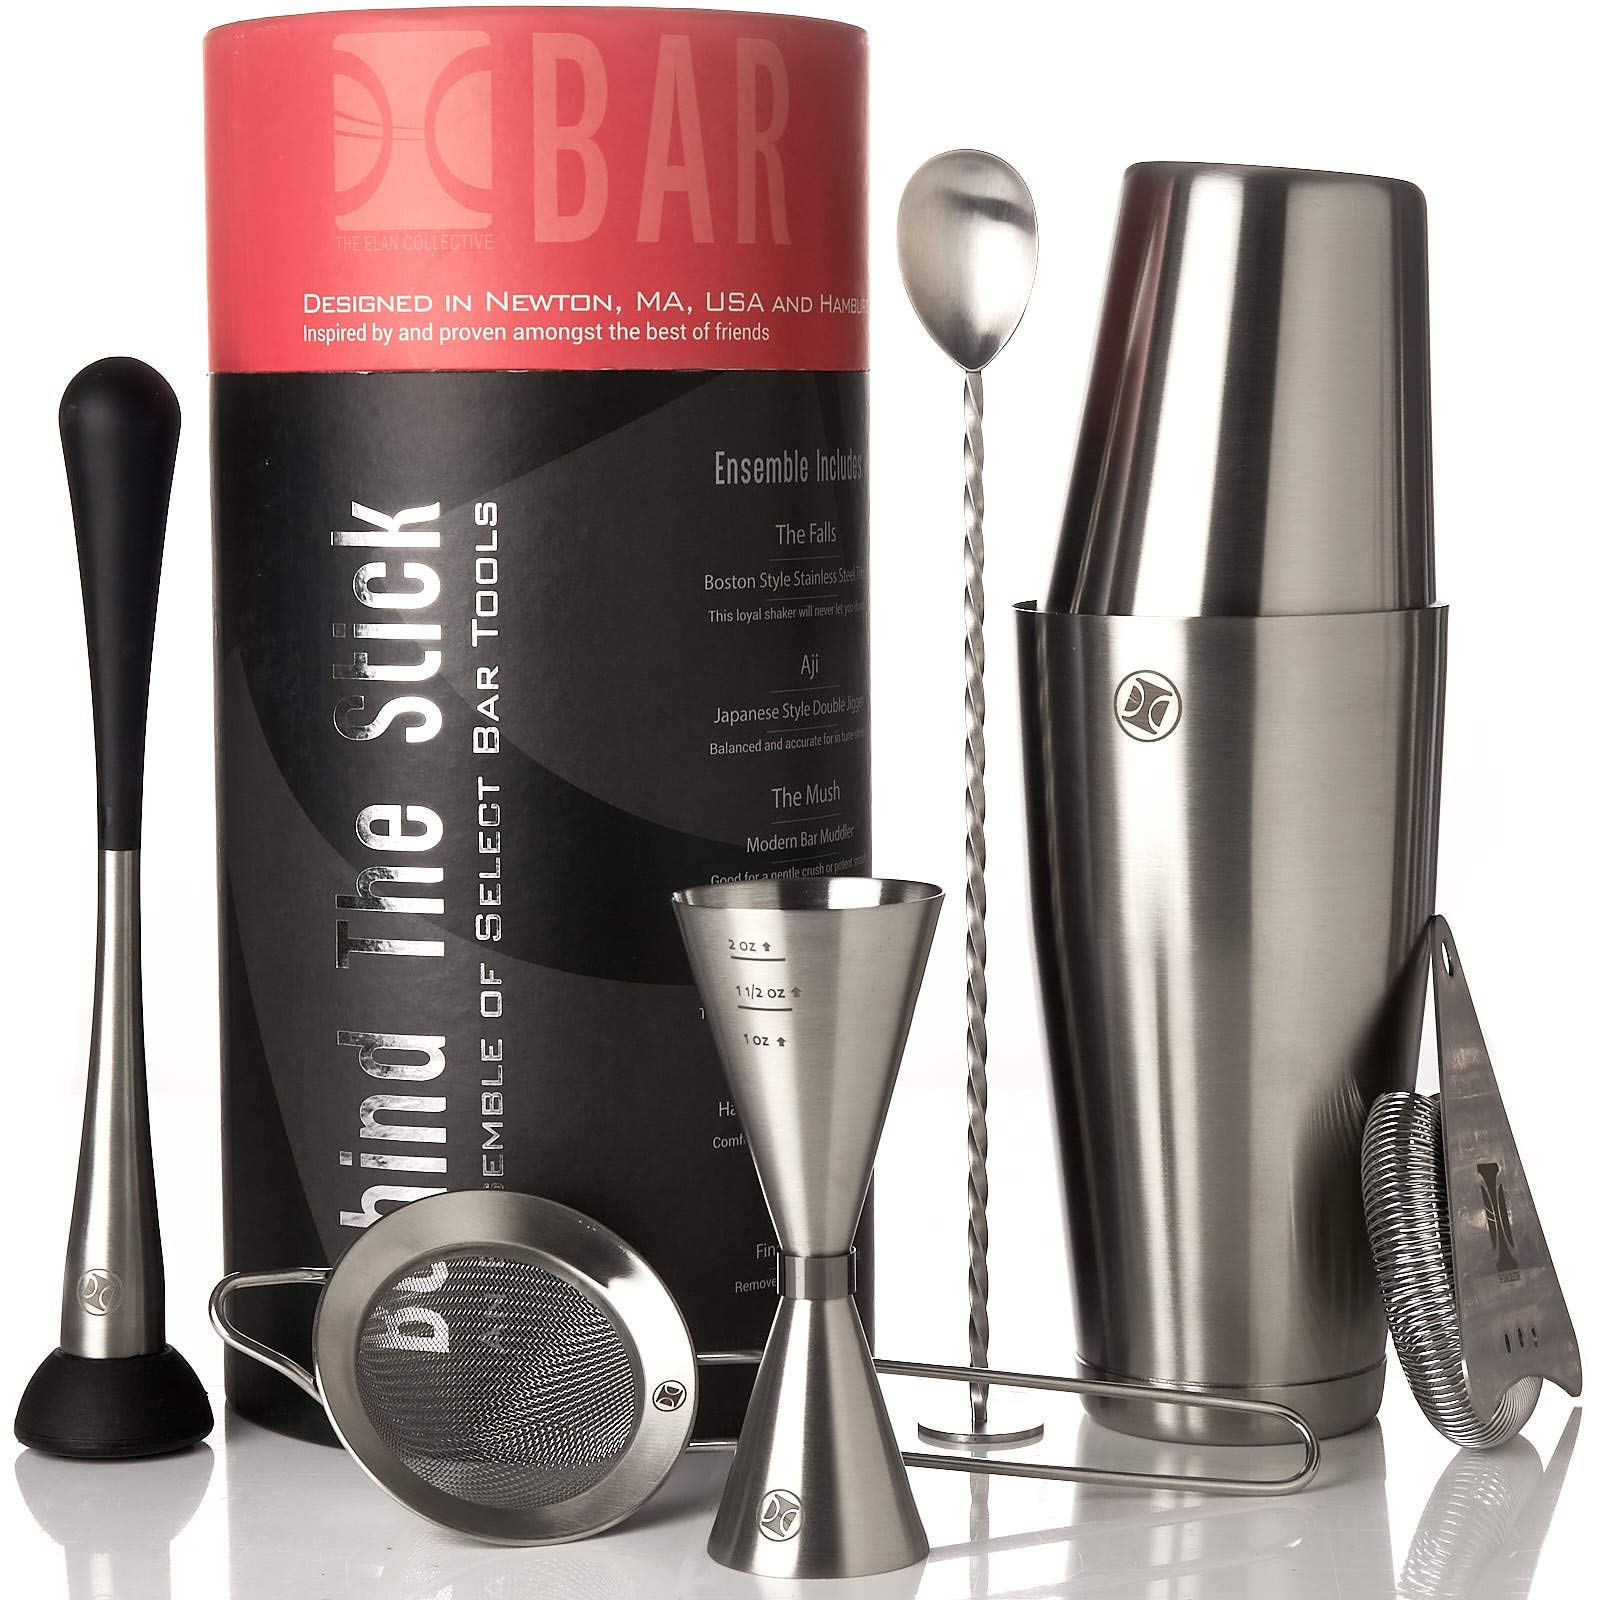 Boston Cocktail Shaker Set I Bar tools, 7 Piece Barware Kit - 2 Piece Boston Shaker, Jigger, Bar Spoon, Hawthorne & Citrus Strainers, Muddler in Brushed Stainless Steel by The Elan Collective by The Elan Collective